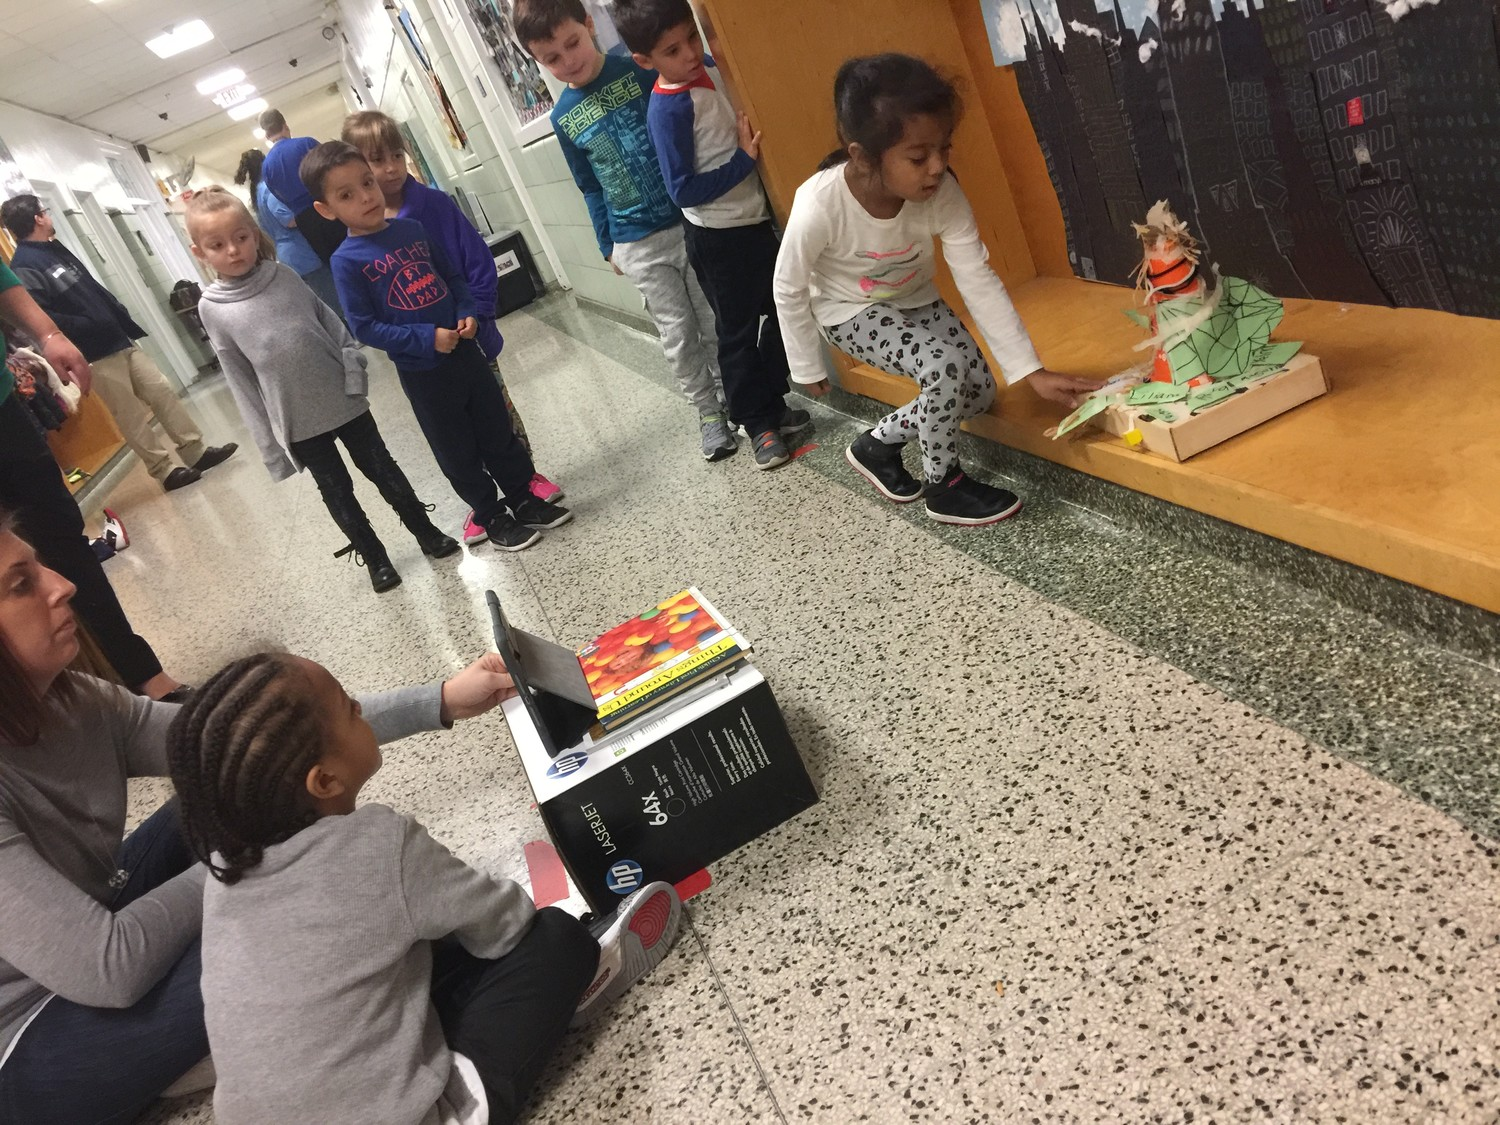 Camrin helped his teacher take stop-motion photographs of their float, which Yeimi pushed along in small increments. Sofia, far left, Ryan, Liliana, Mason and Joseph, awaited their turns.